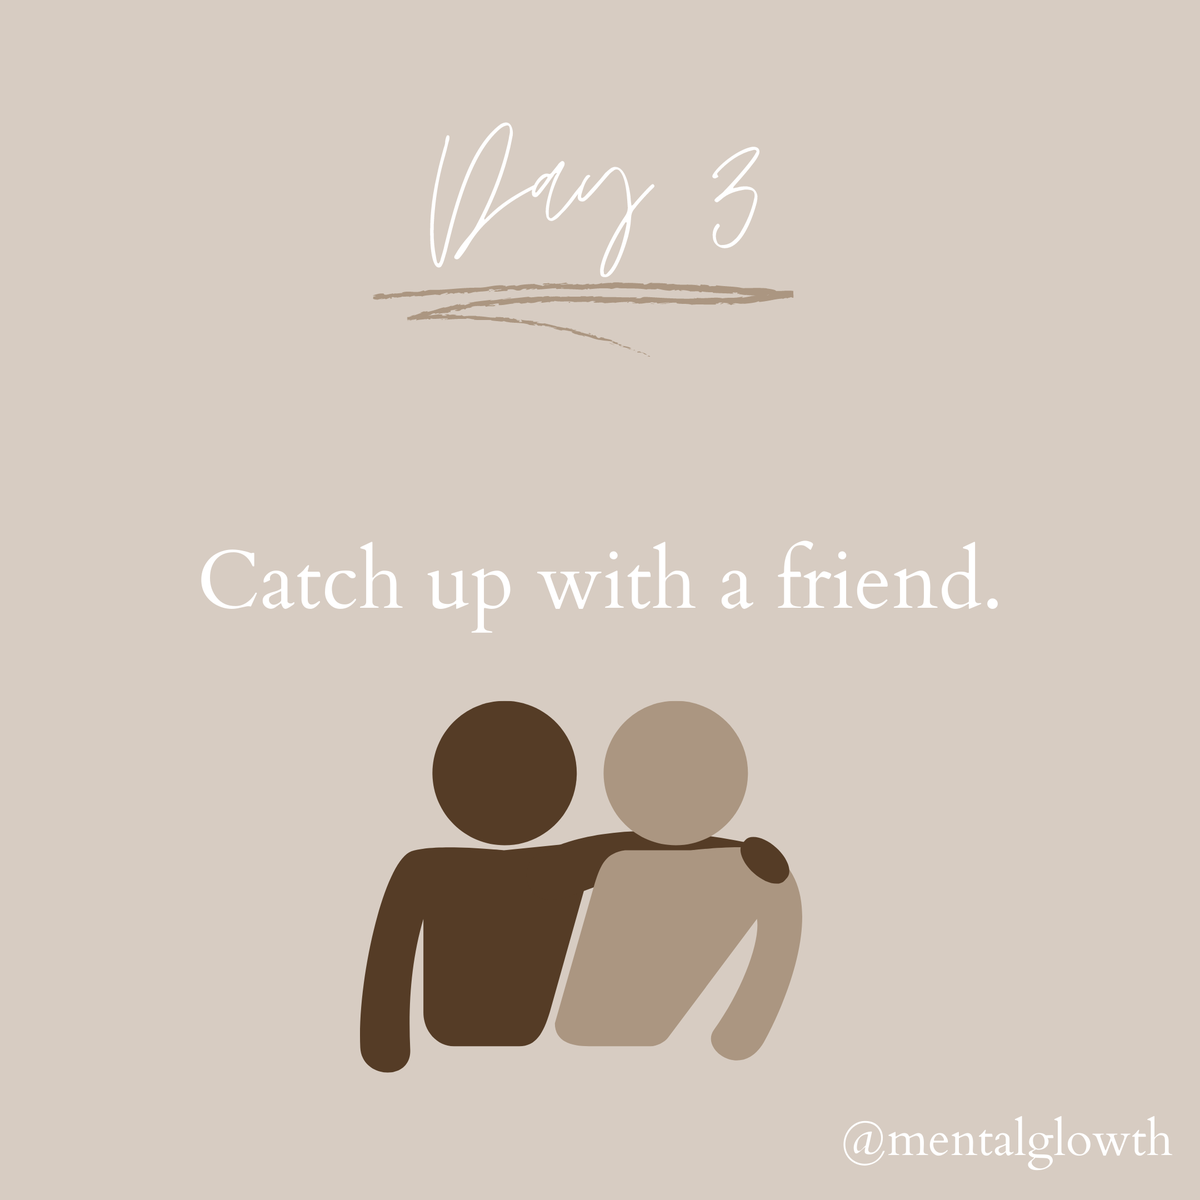 Catching up with a friend can really make you feel good and it will make them feel good that you reached out.   #mentalglowth #mentalhealth #mentalillness #mentalhealthawareness #mental #mentalwellness #blackownedbusiness #health #wellness #selfcare https://t.co/6TsvqcT9wq